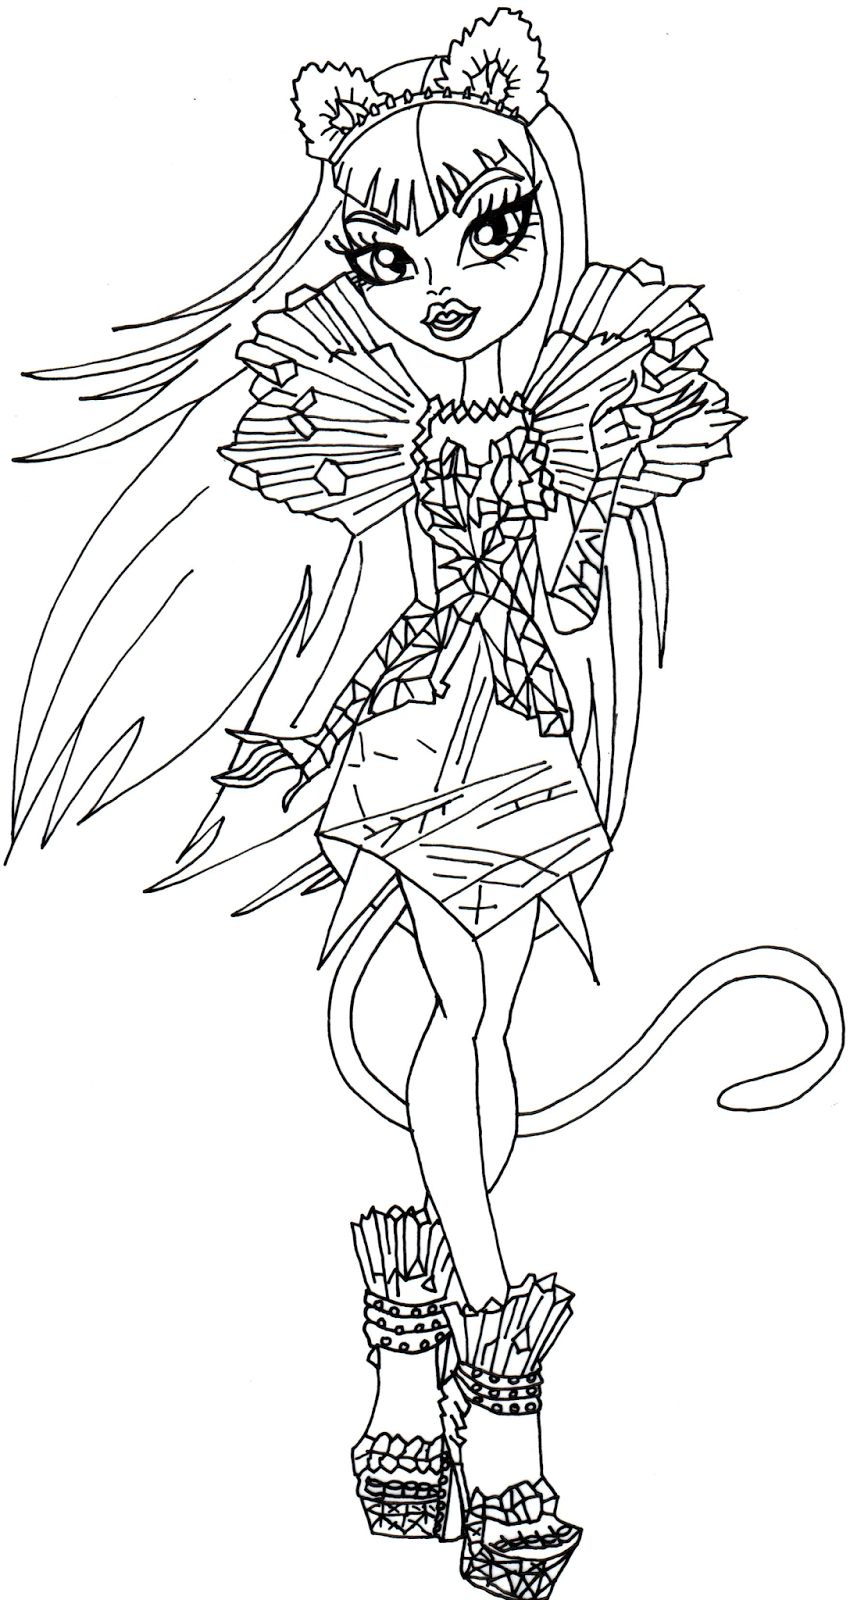 Monster High Coloring Pages Printable Coloring Page Monster High Coloring Book Page Draculaura